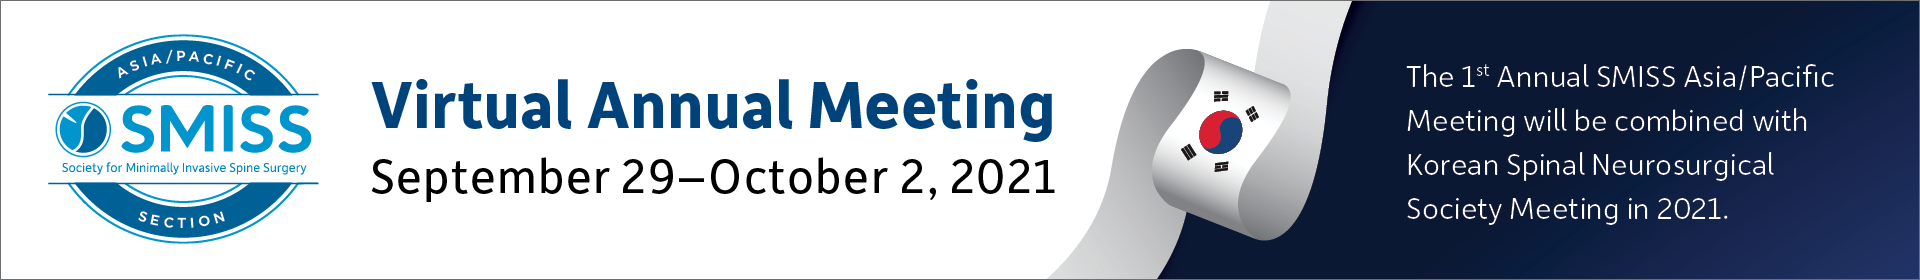 SMISS Asia/Pacific 2021 Annual Meeting Event Banner